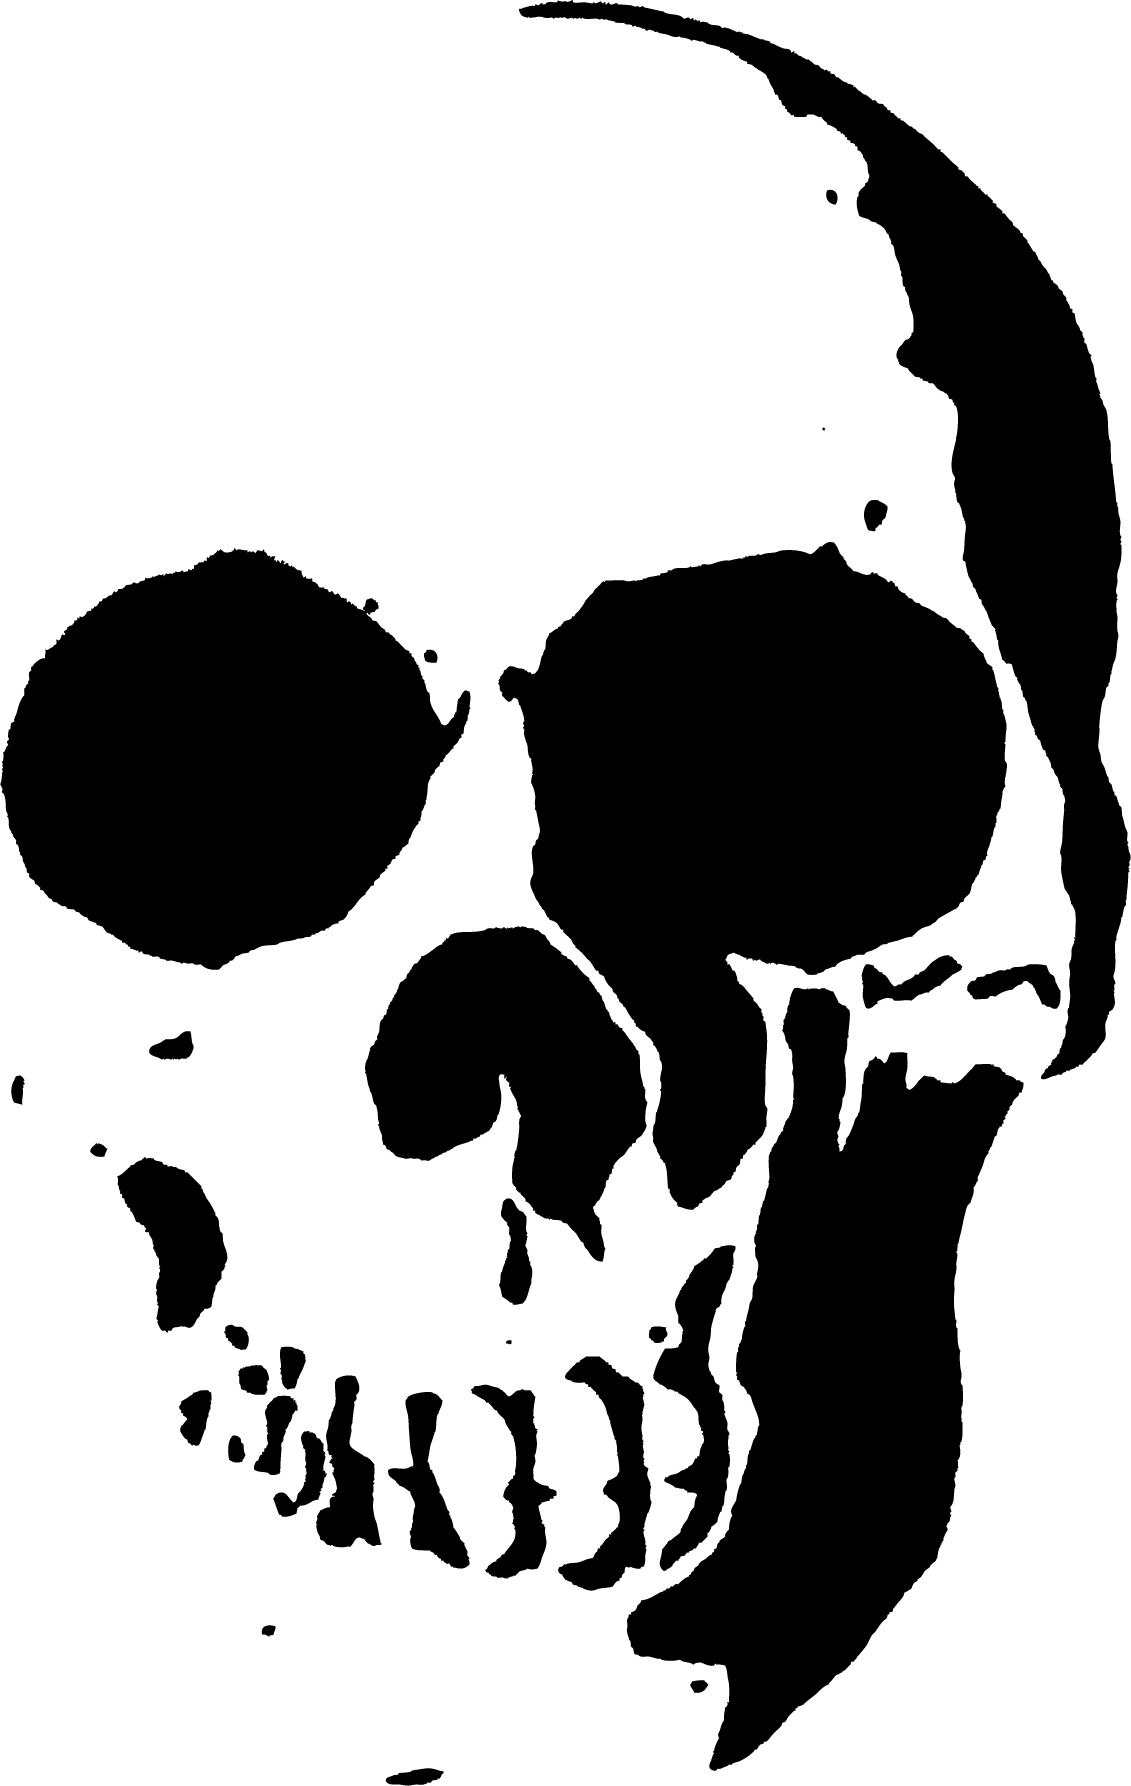 23 Free Skull Stencil Printable Templates | Guide Patterns - Skull Stencils Free Printable